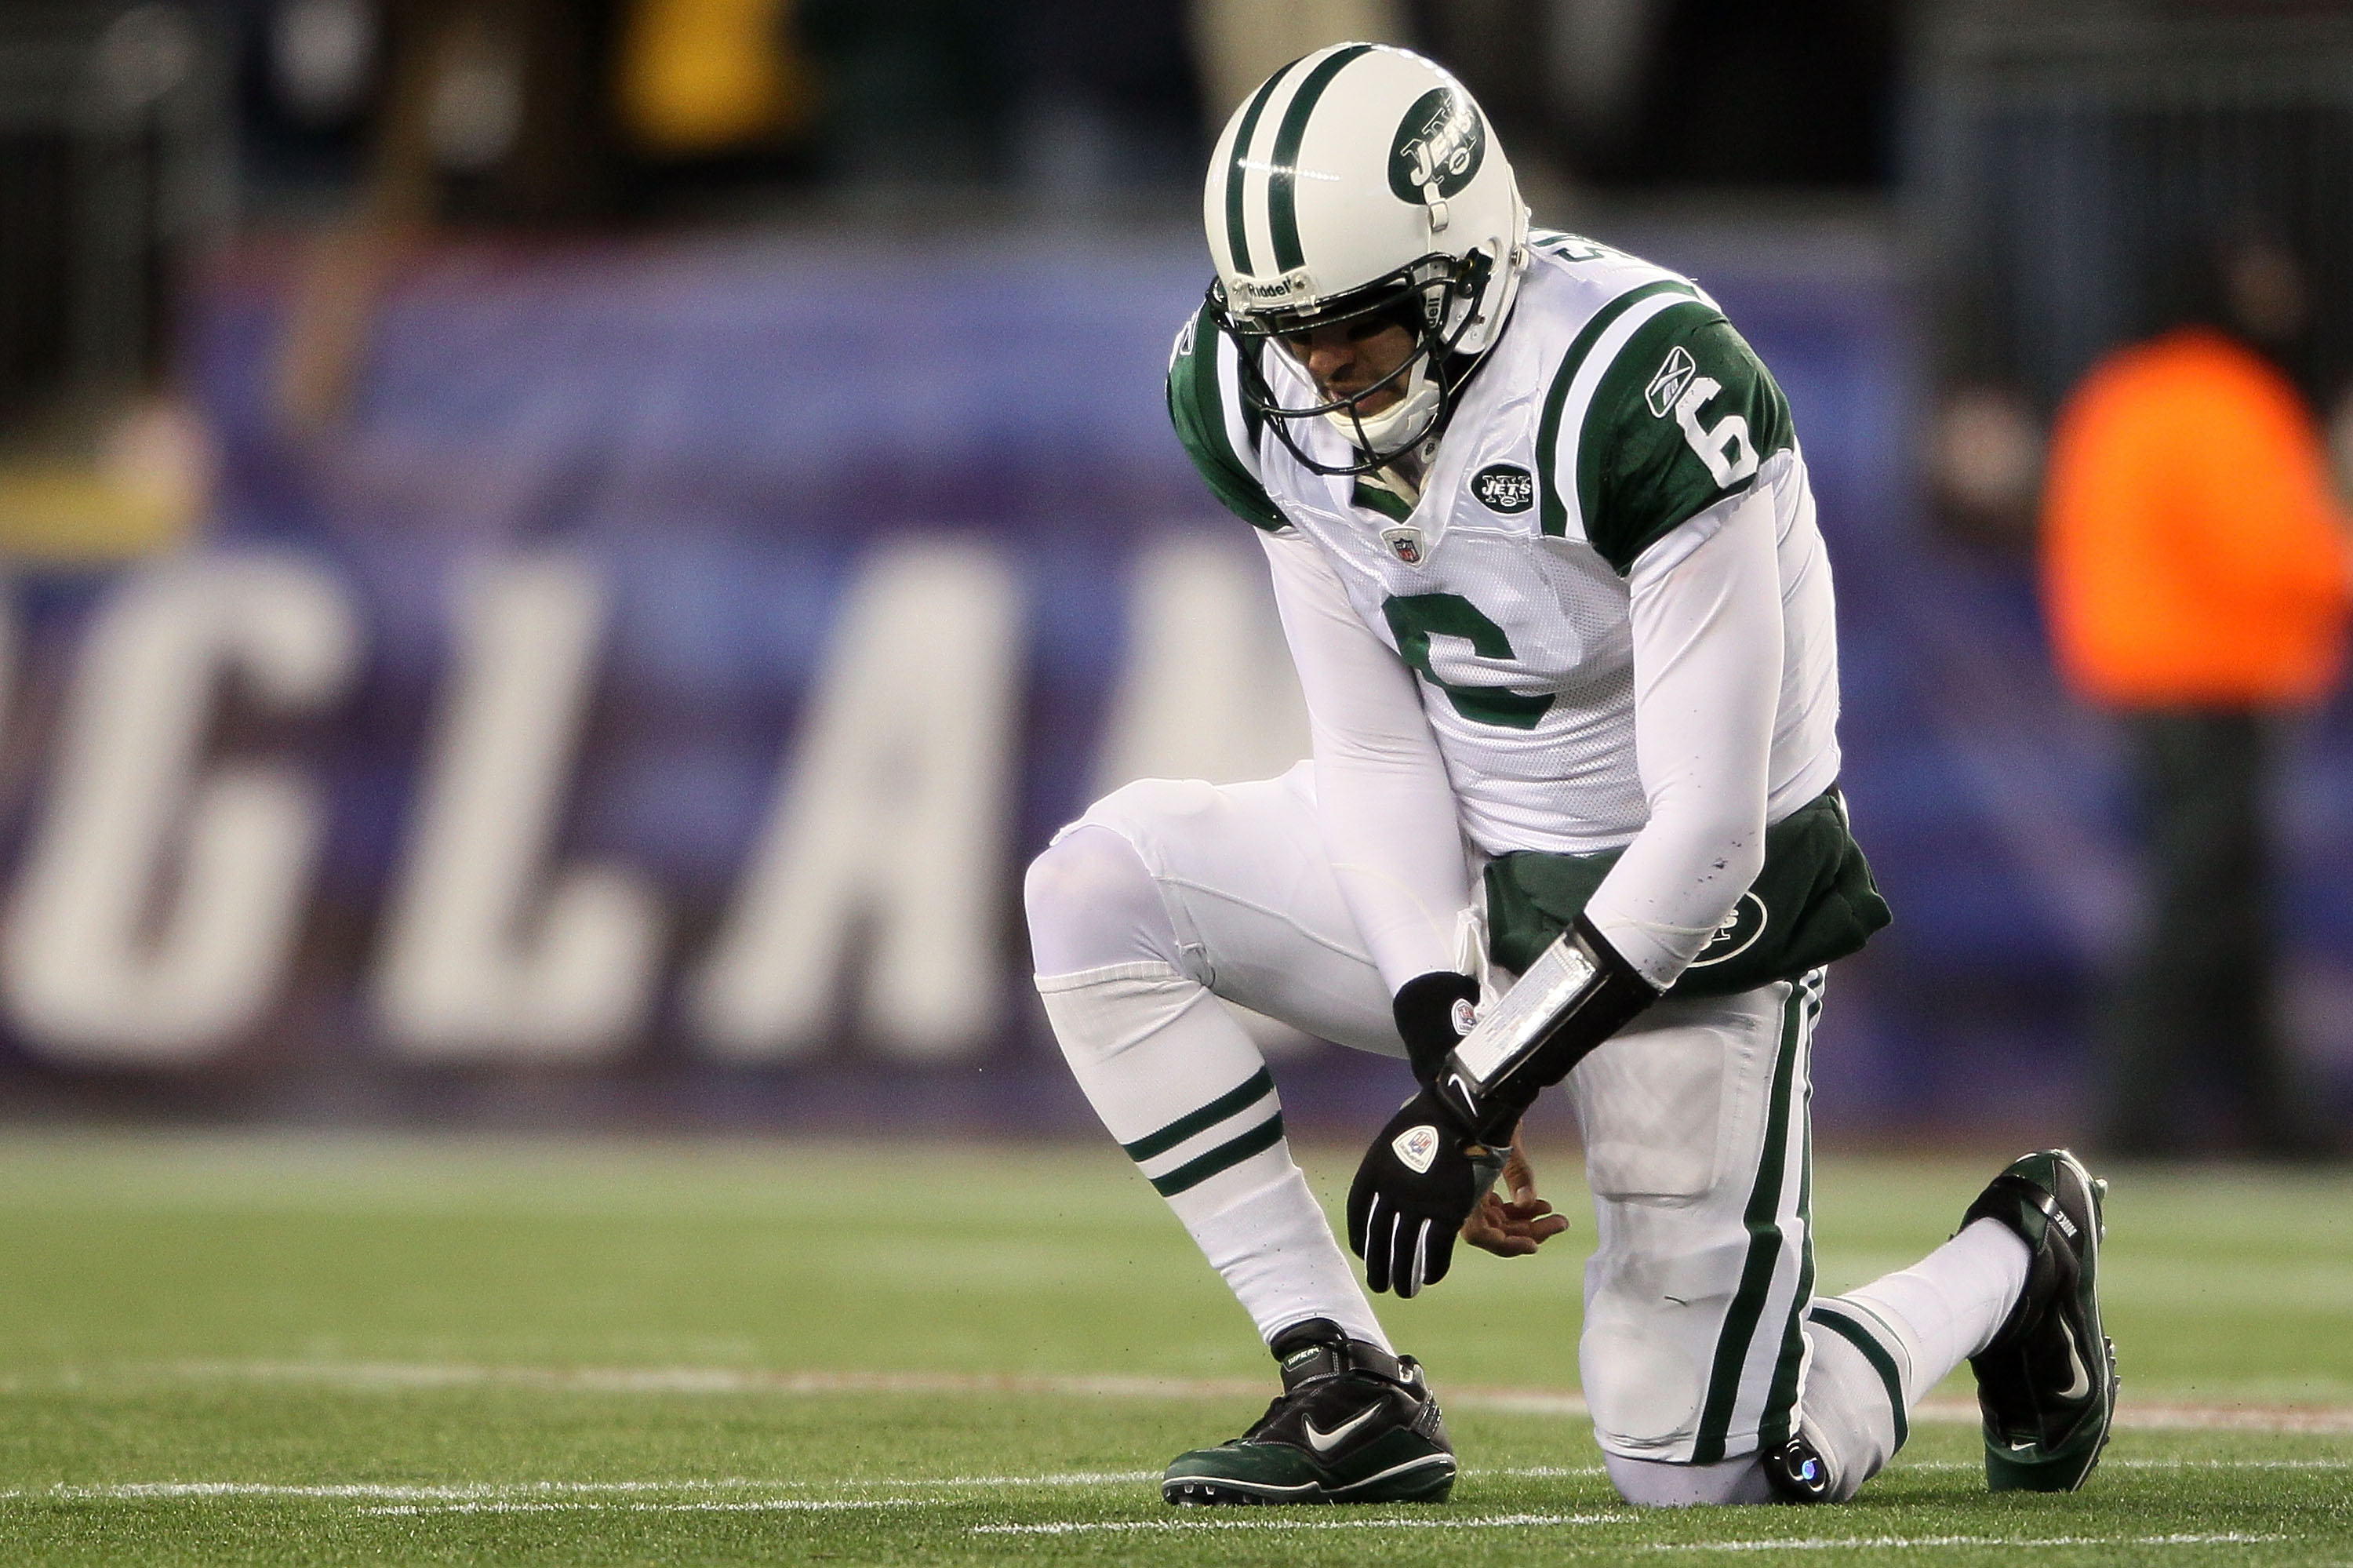 FOXBORO, MA - DECEMBER 06:  Mark Sanchez #6 of the New York Jets is slow to get up after he was knocked down on a play in the first quarter against the New England Patriots at Gillette Stadium on December 6, 2010 in Foxboro, Massachusetts.  (Photo by Elsa